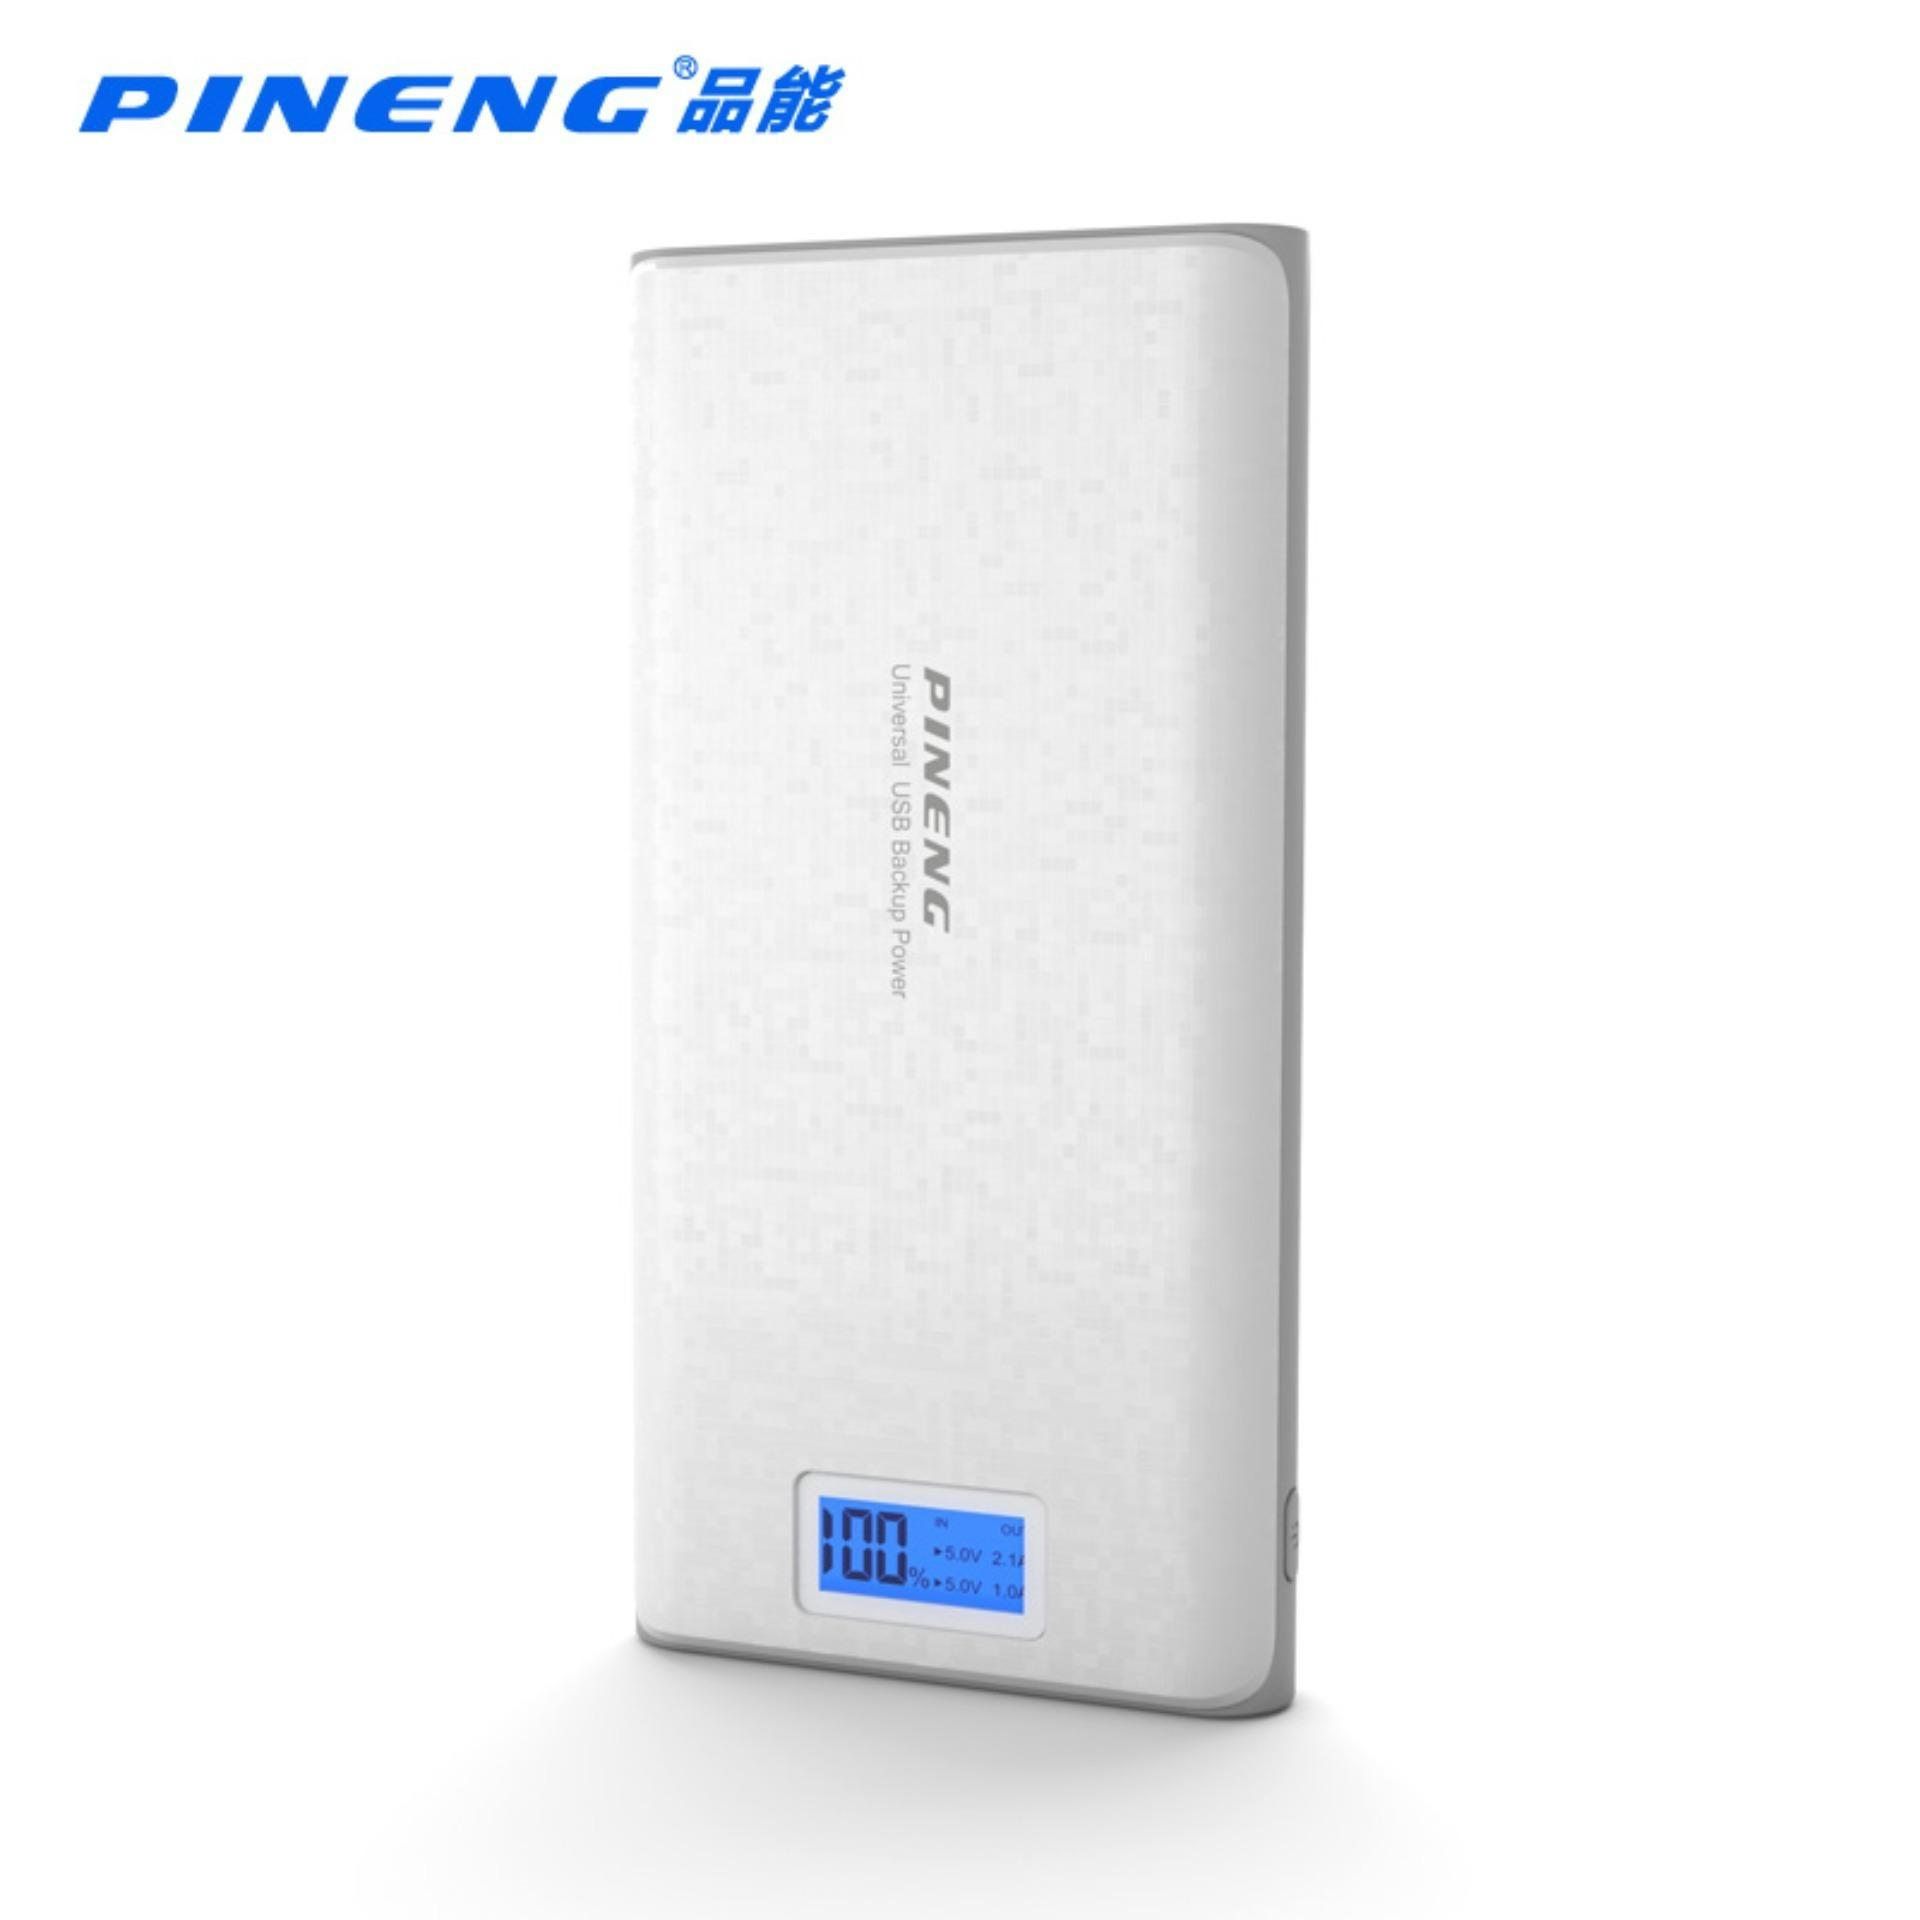 Pineng PN-920 20000mAh Dual Usb Output w/ Led Flashlight Power Bank (White/Gray)